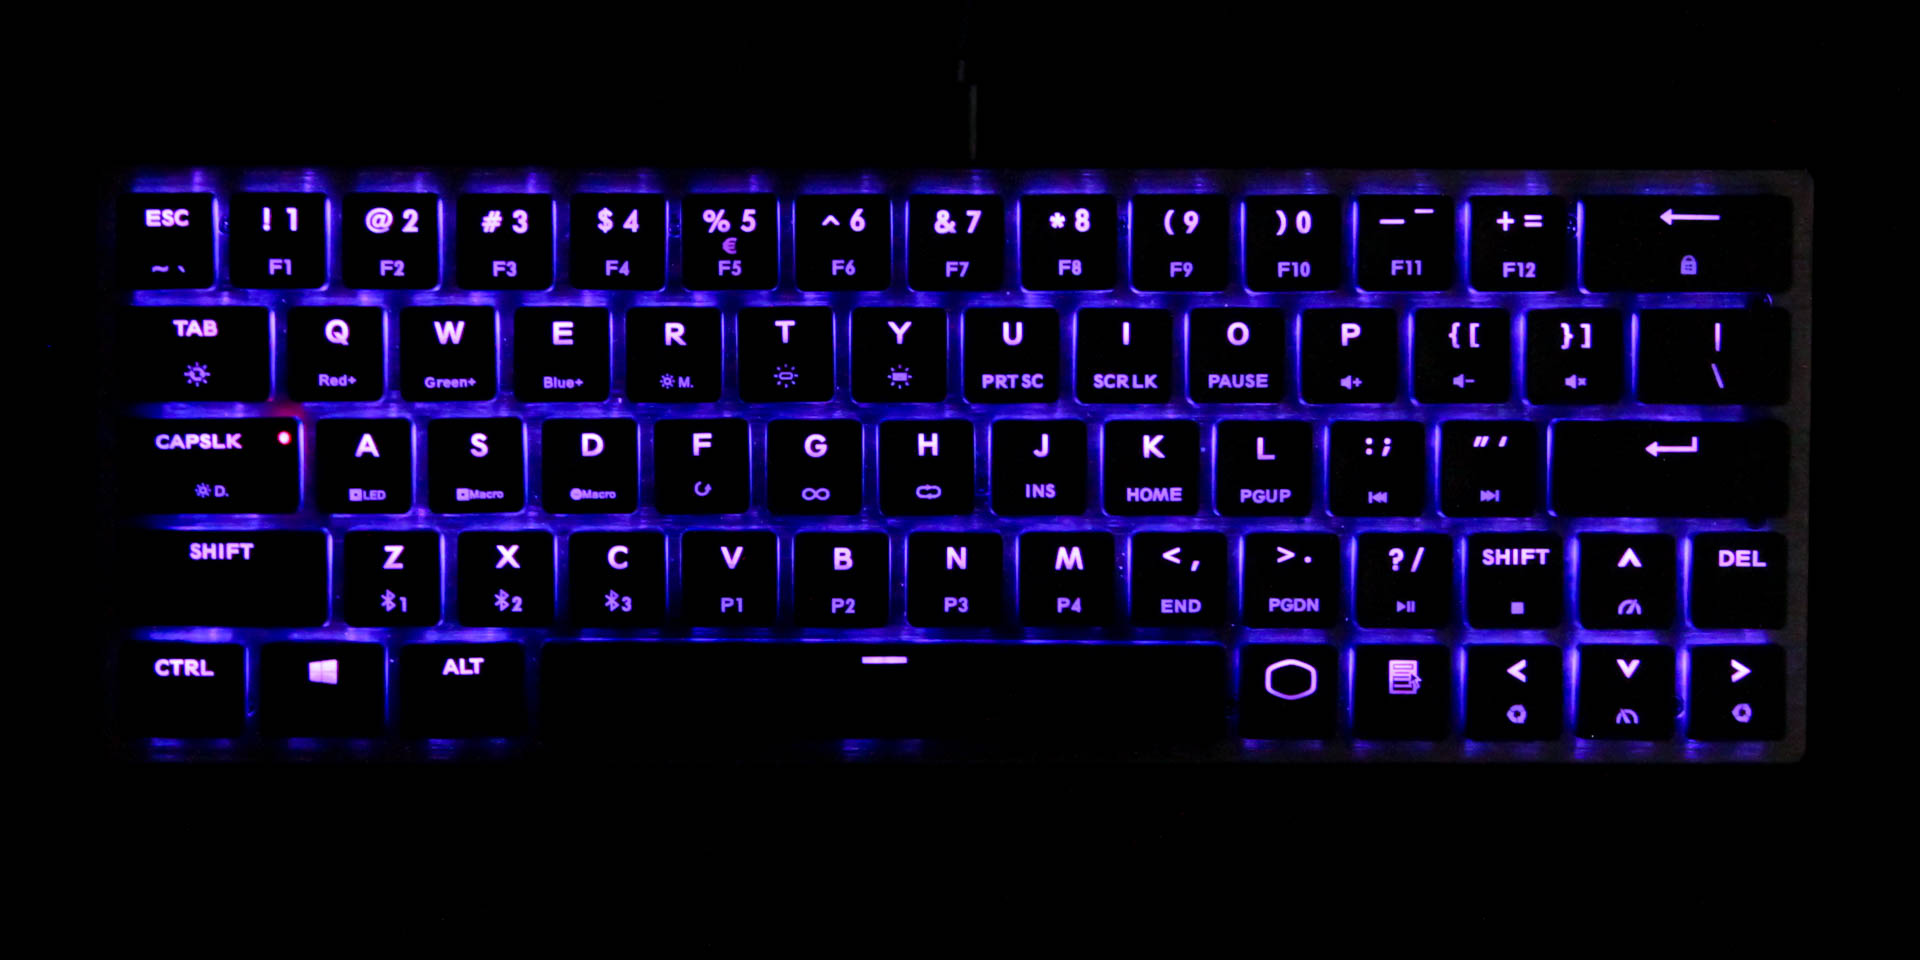 Cooler Master Sk621 Keyboard Review Techpowerup